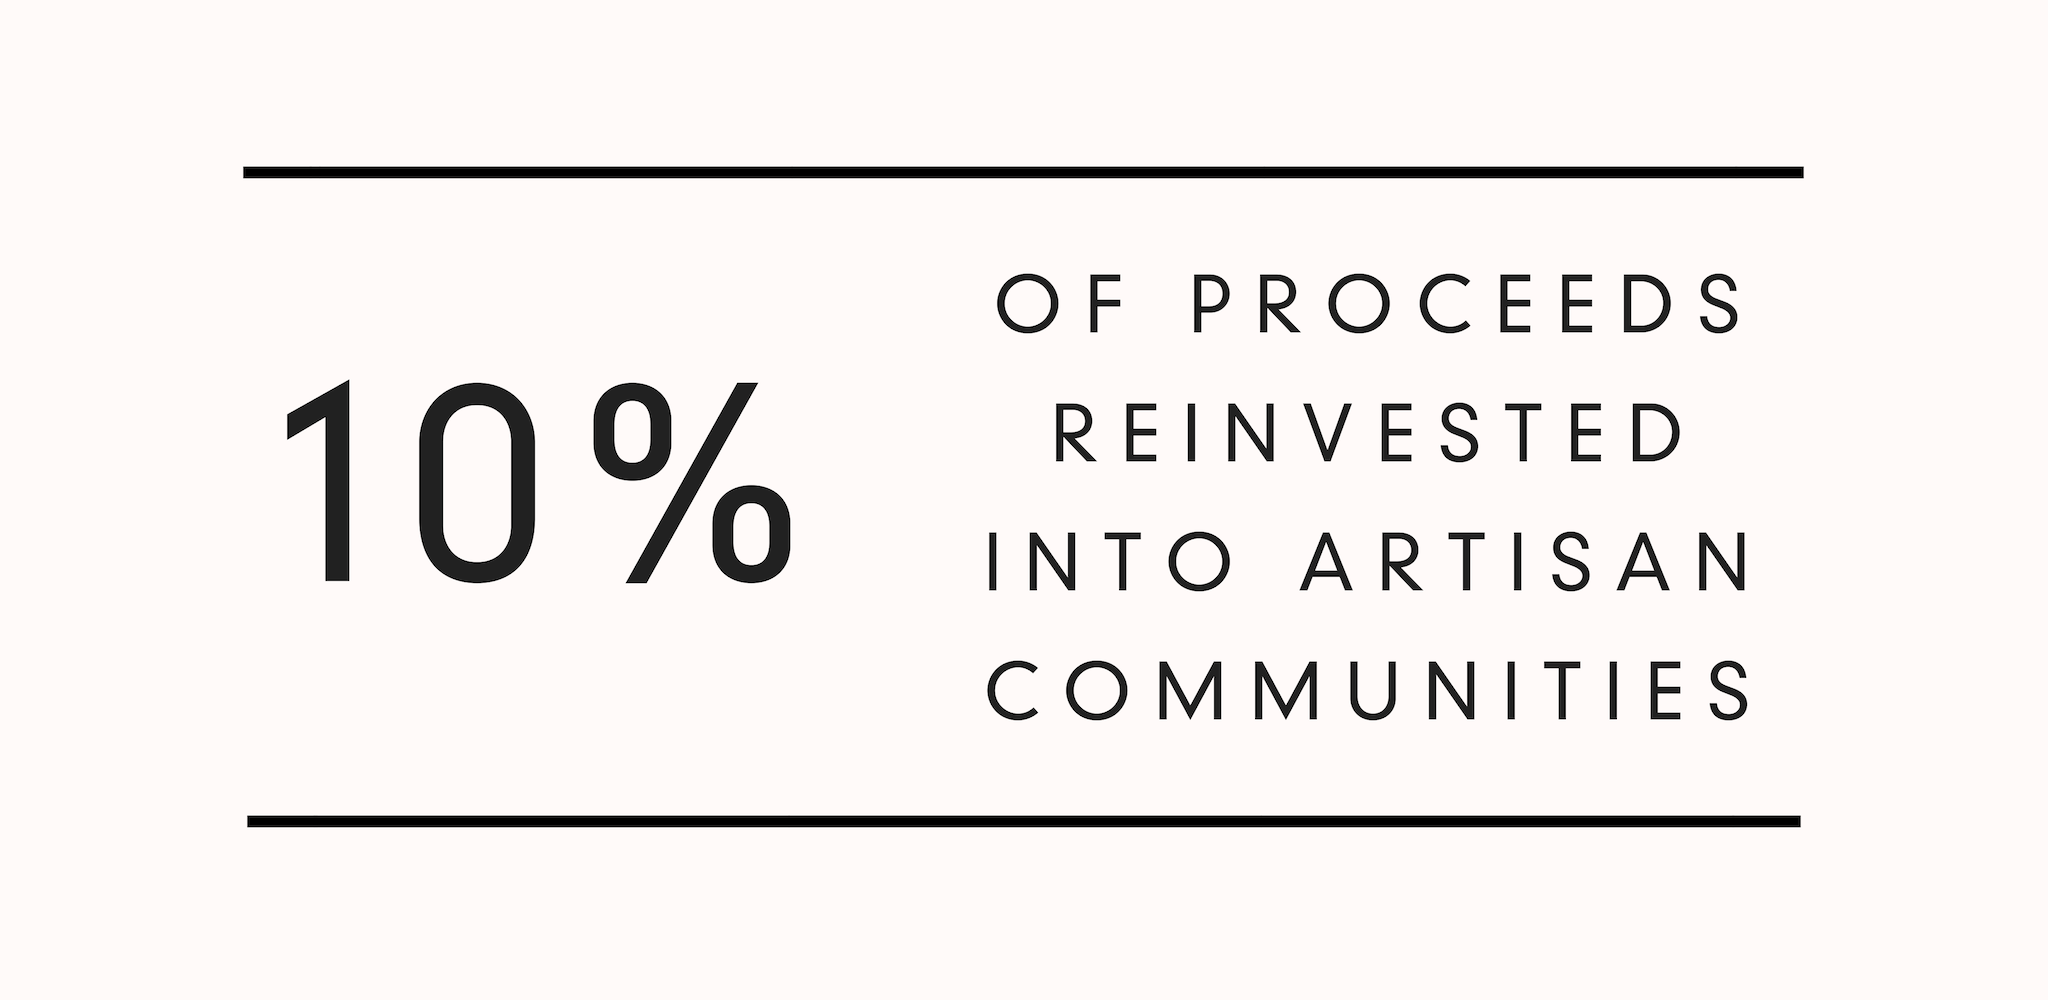 Kala Collective - 10% reinvested into artisan communities - social impact